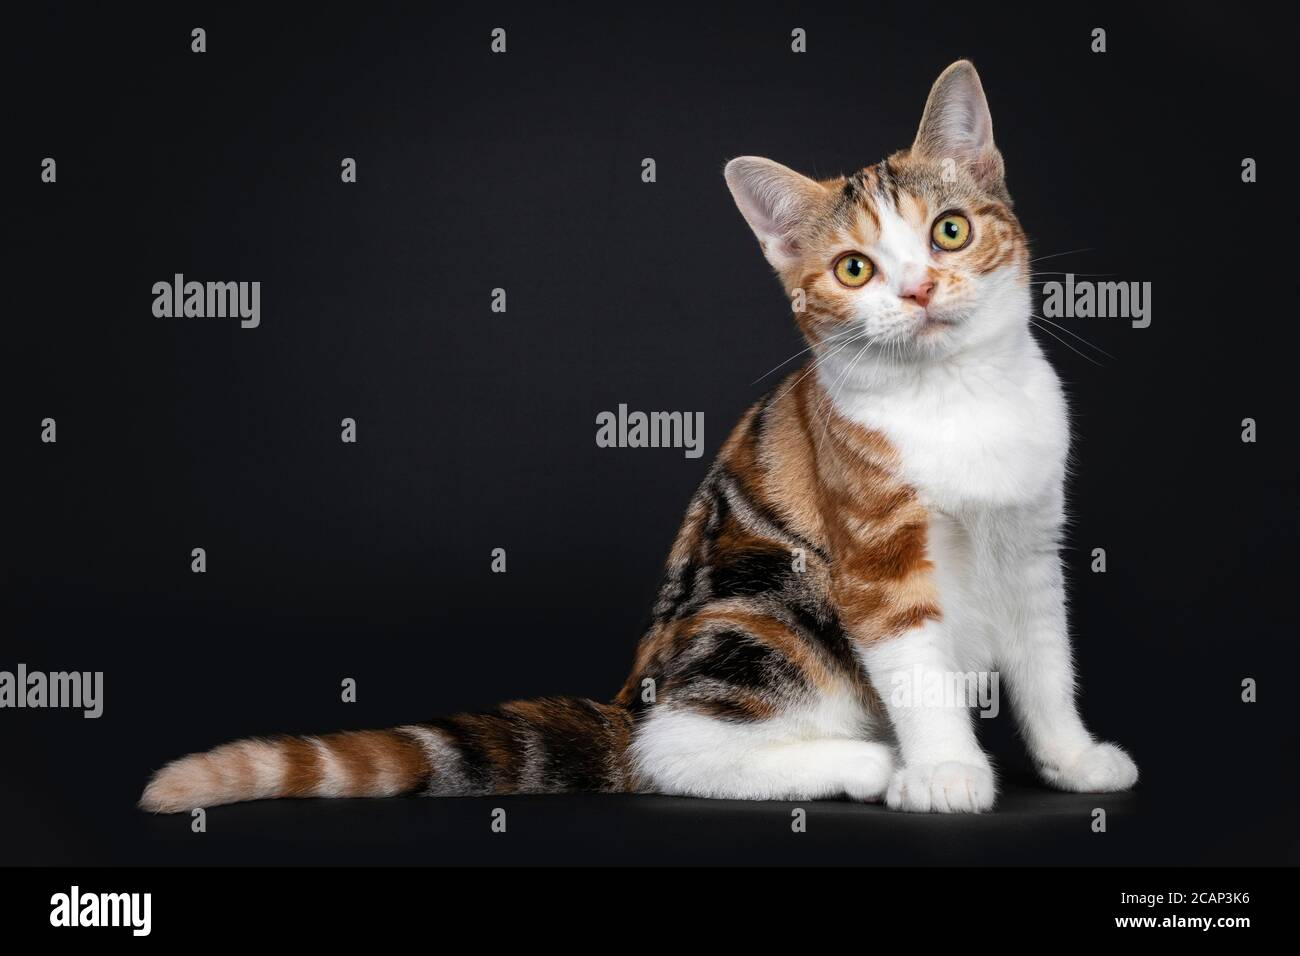 Pretty American Shorthair cat kitten with amazing pattern, sitting side ways. Looking straight at camera with yellow eyes. Isolated on black backgroun Stock Photo